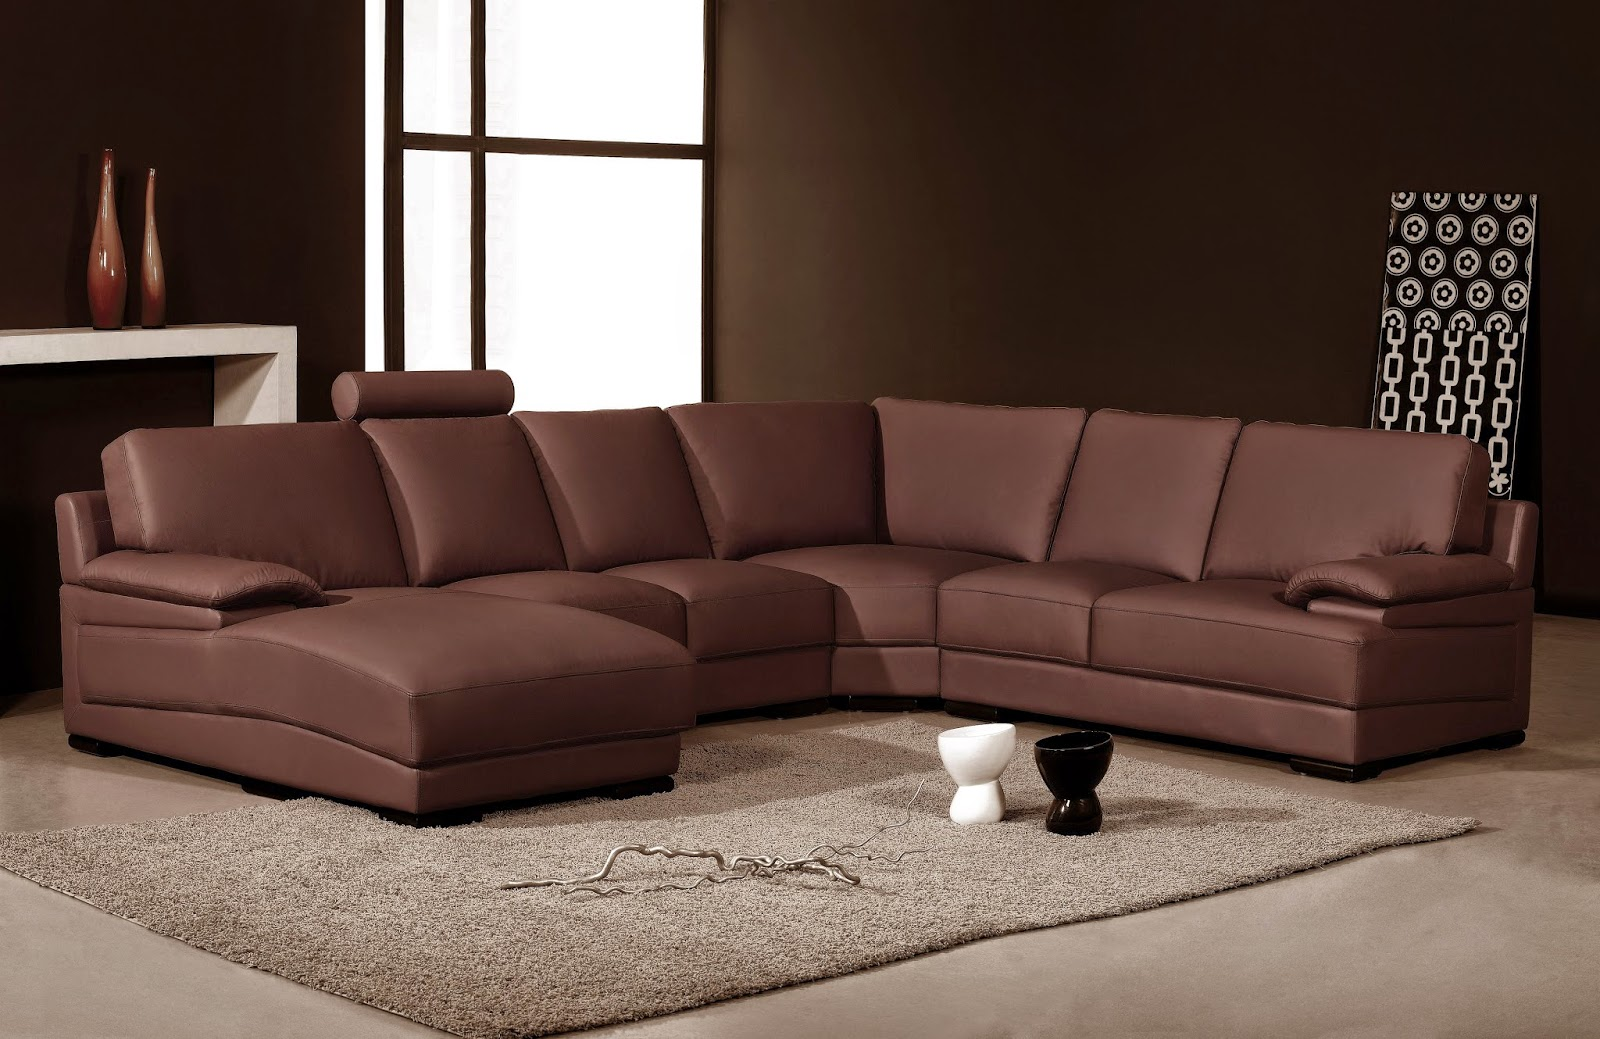 Living Room Decor Ideas Brown Leather Sofa sectional leather sofa. microfiber reclining sectional sofa. full